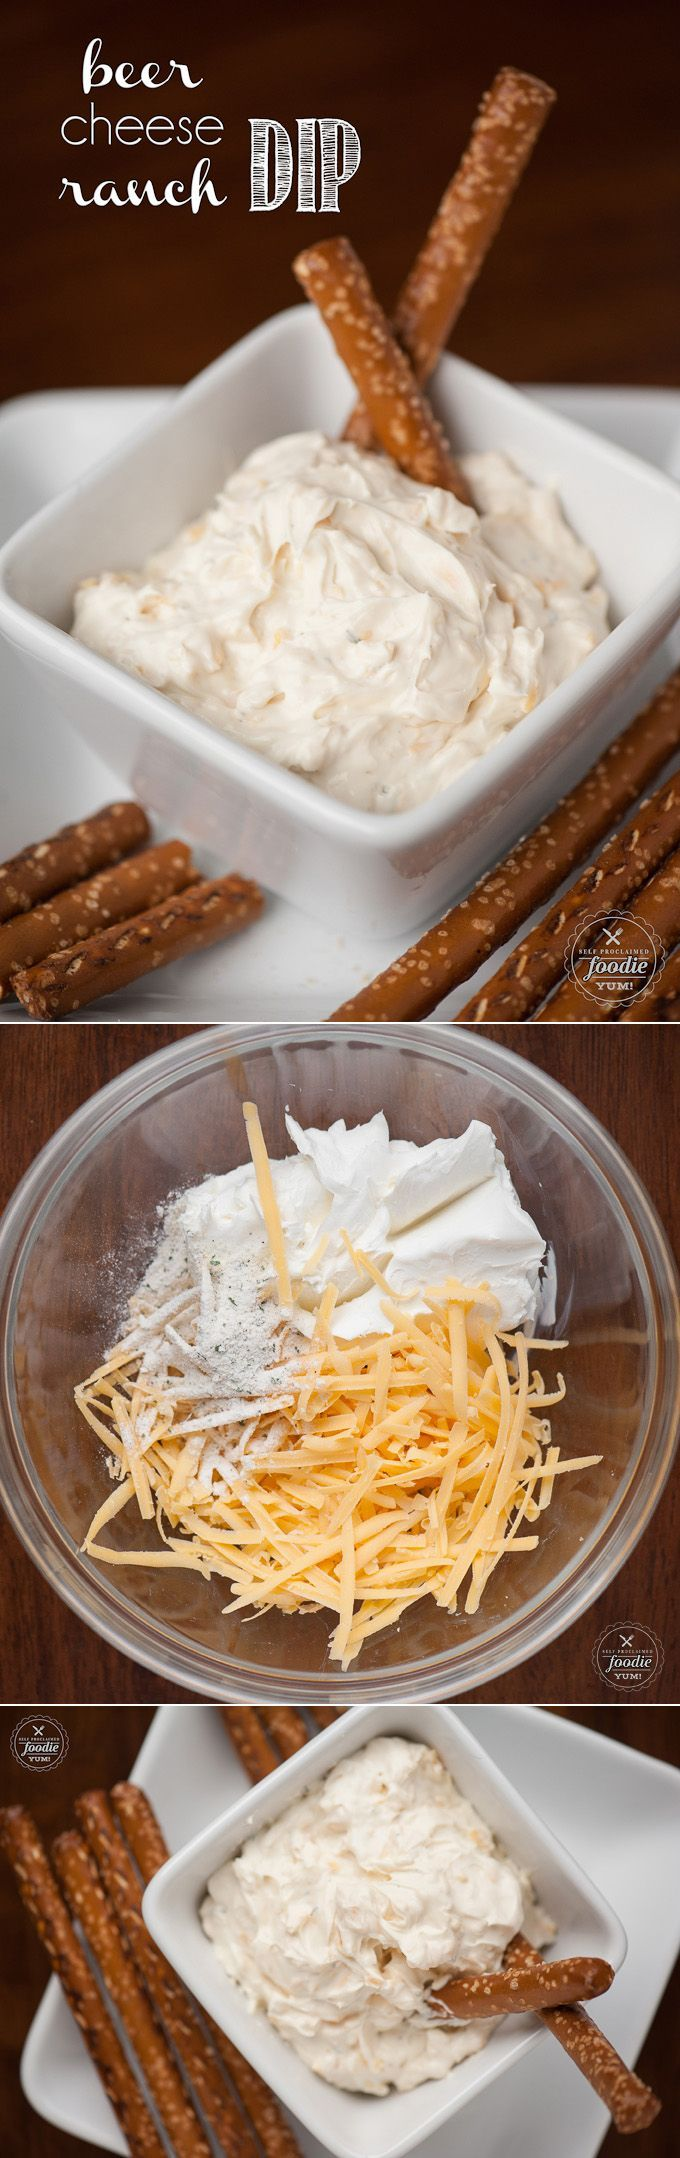 If you love beer, cheese, and the flavor of ranch, then this easy to make chilled Beer Cheese Ranch Dip should be the game day appetizer you make!